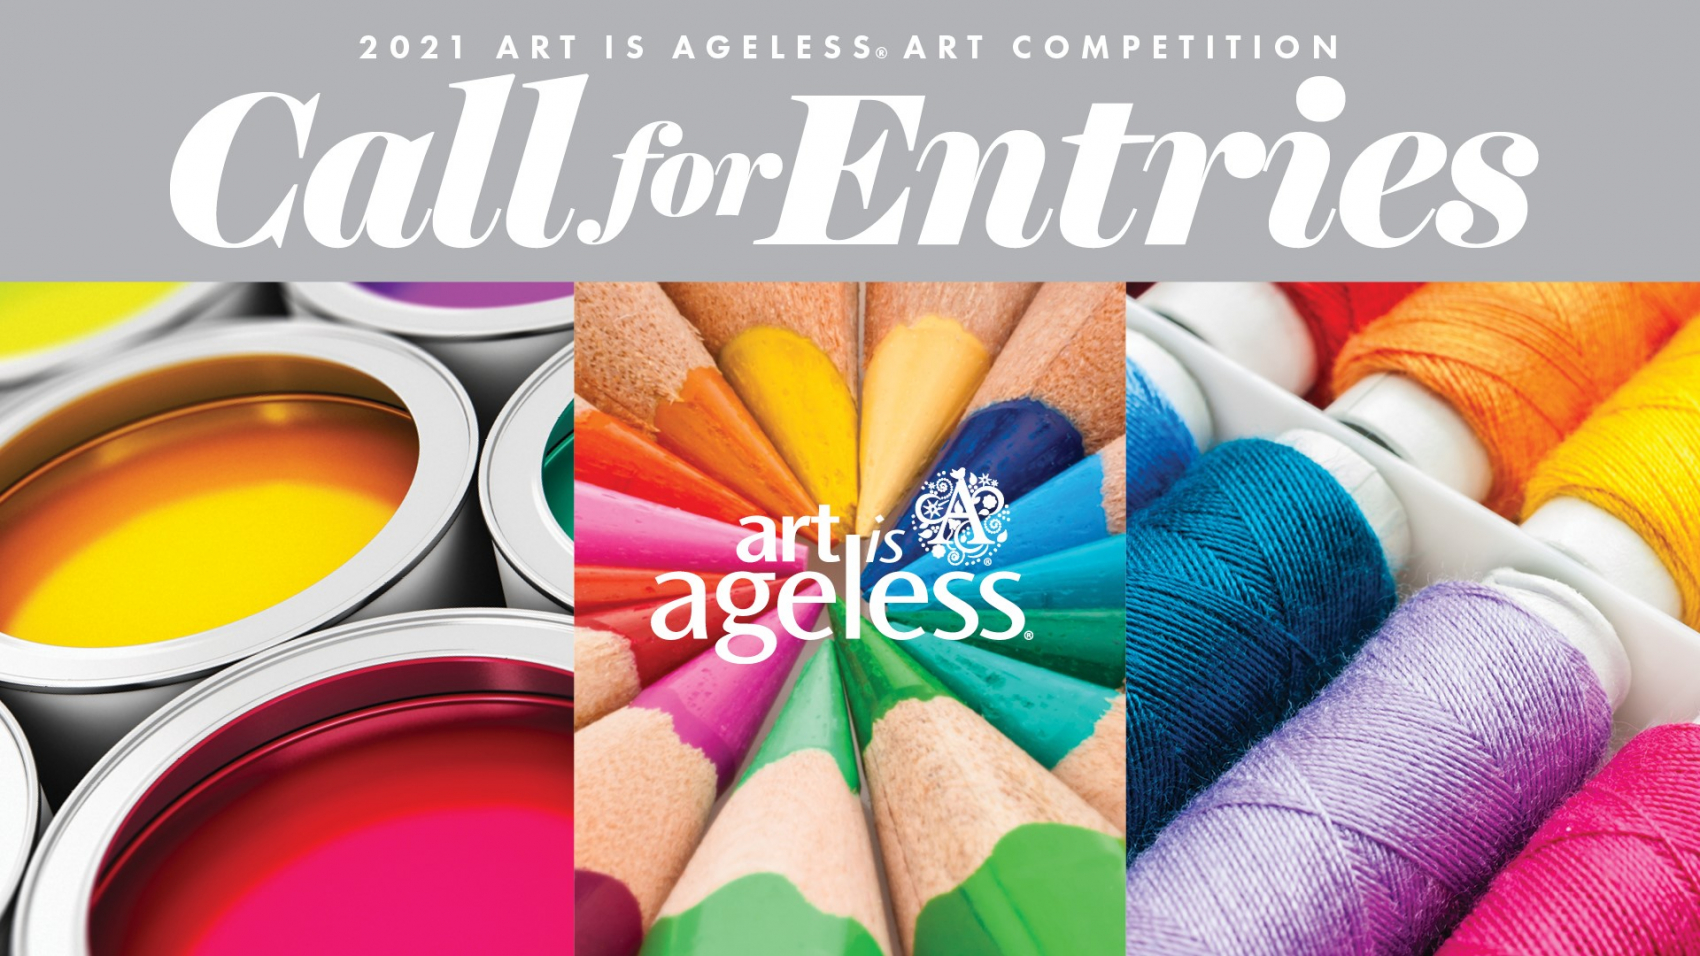 AiA-Call-for-Entries2021